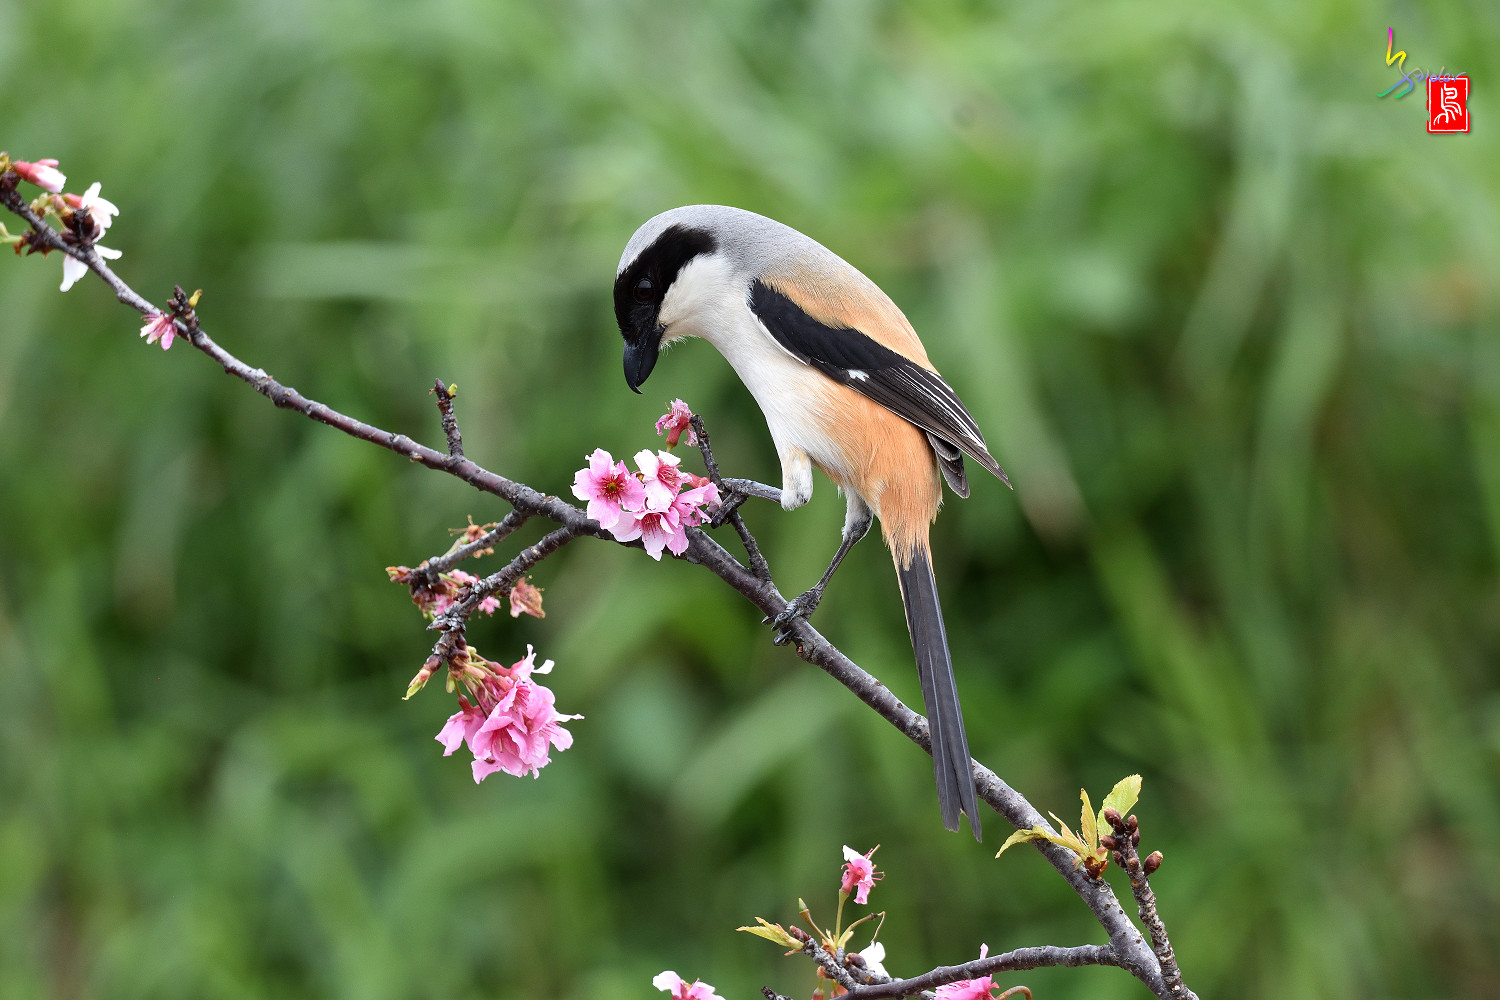 Long-tailed_Shrike_5533